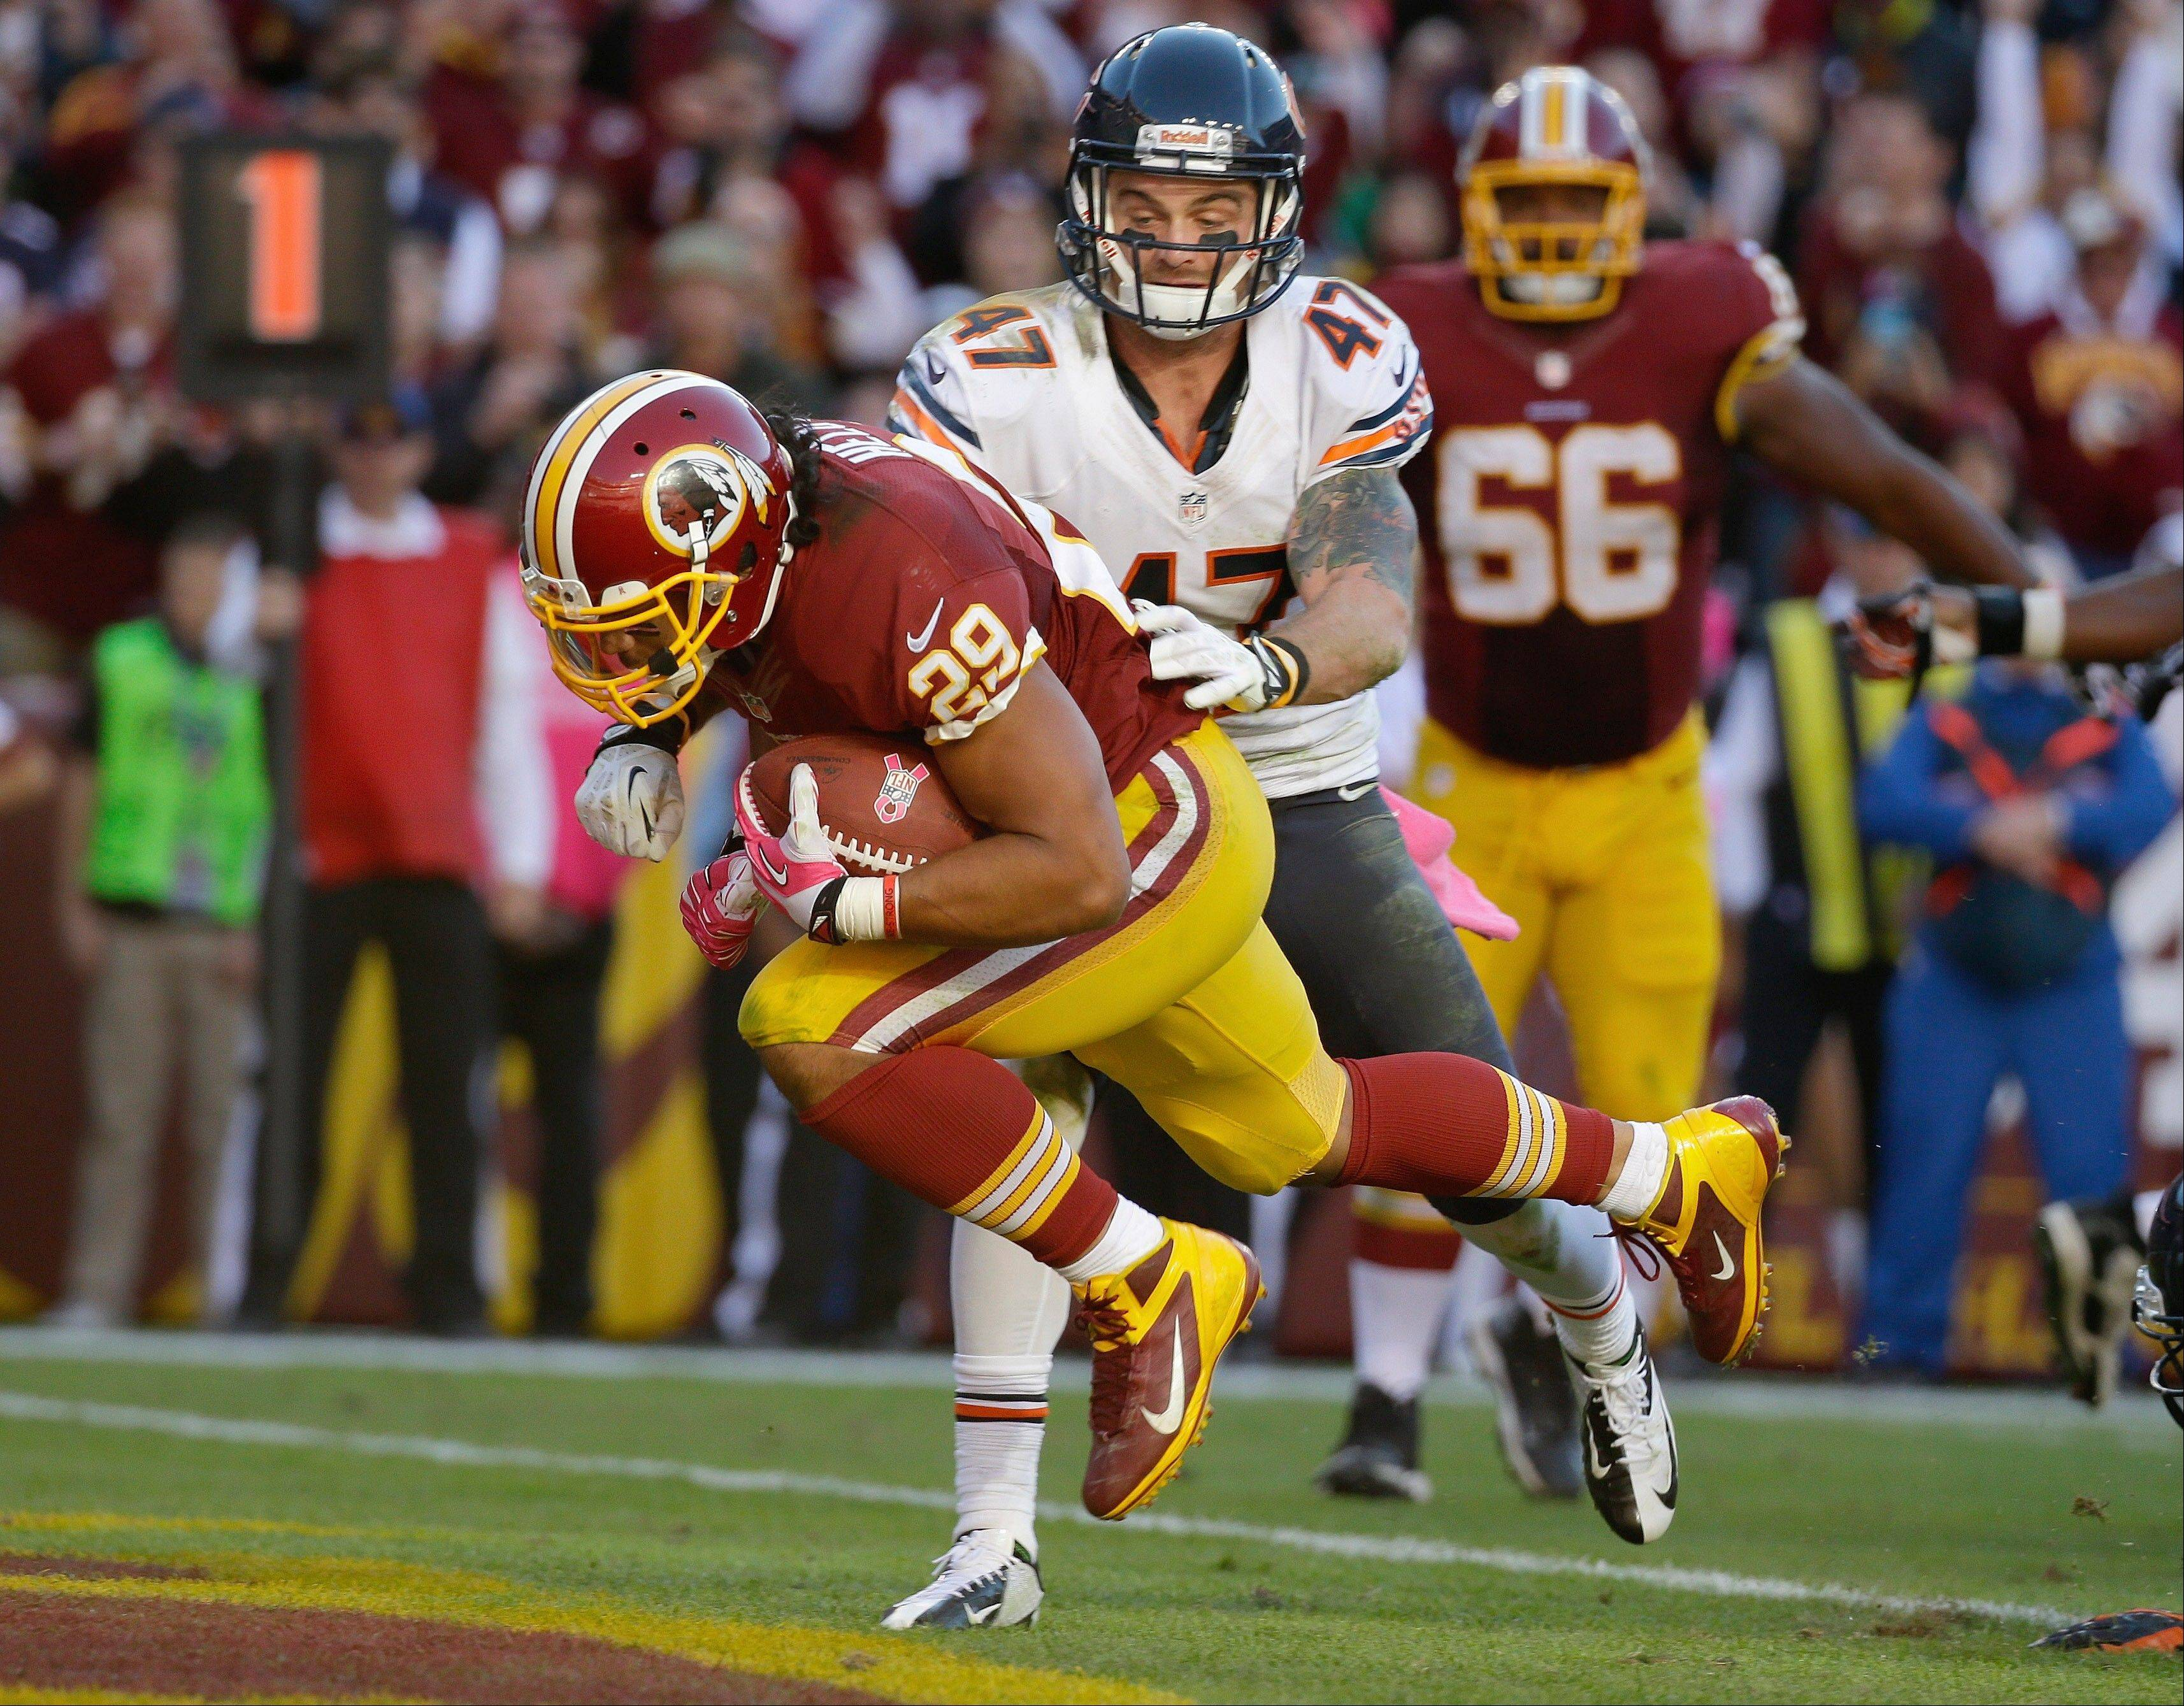 Washington running back Roy Helu Jr. carries the ball past Bears safety Chris Conte and into the end zone for the winning touchdown Sunday. For the first time in Bears history, opponents have scored at least 21 points through the first seven games.